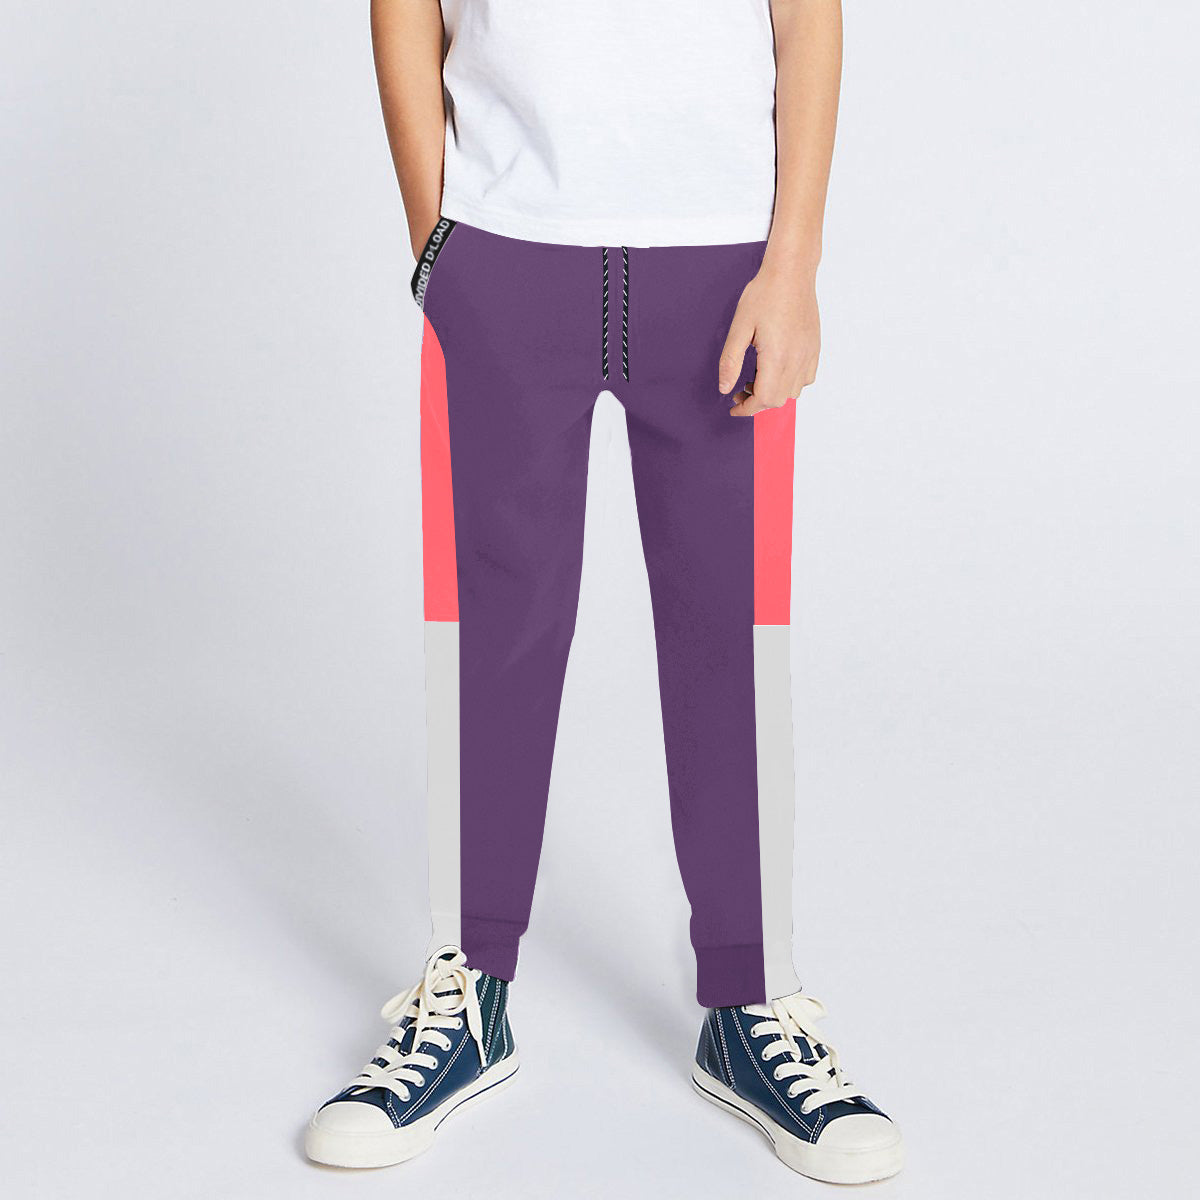 Next Slim Fit Jogger Trouser For Kids-Light Purple with Light Pink & White Panels-SP2684